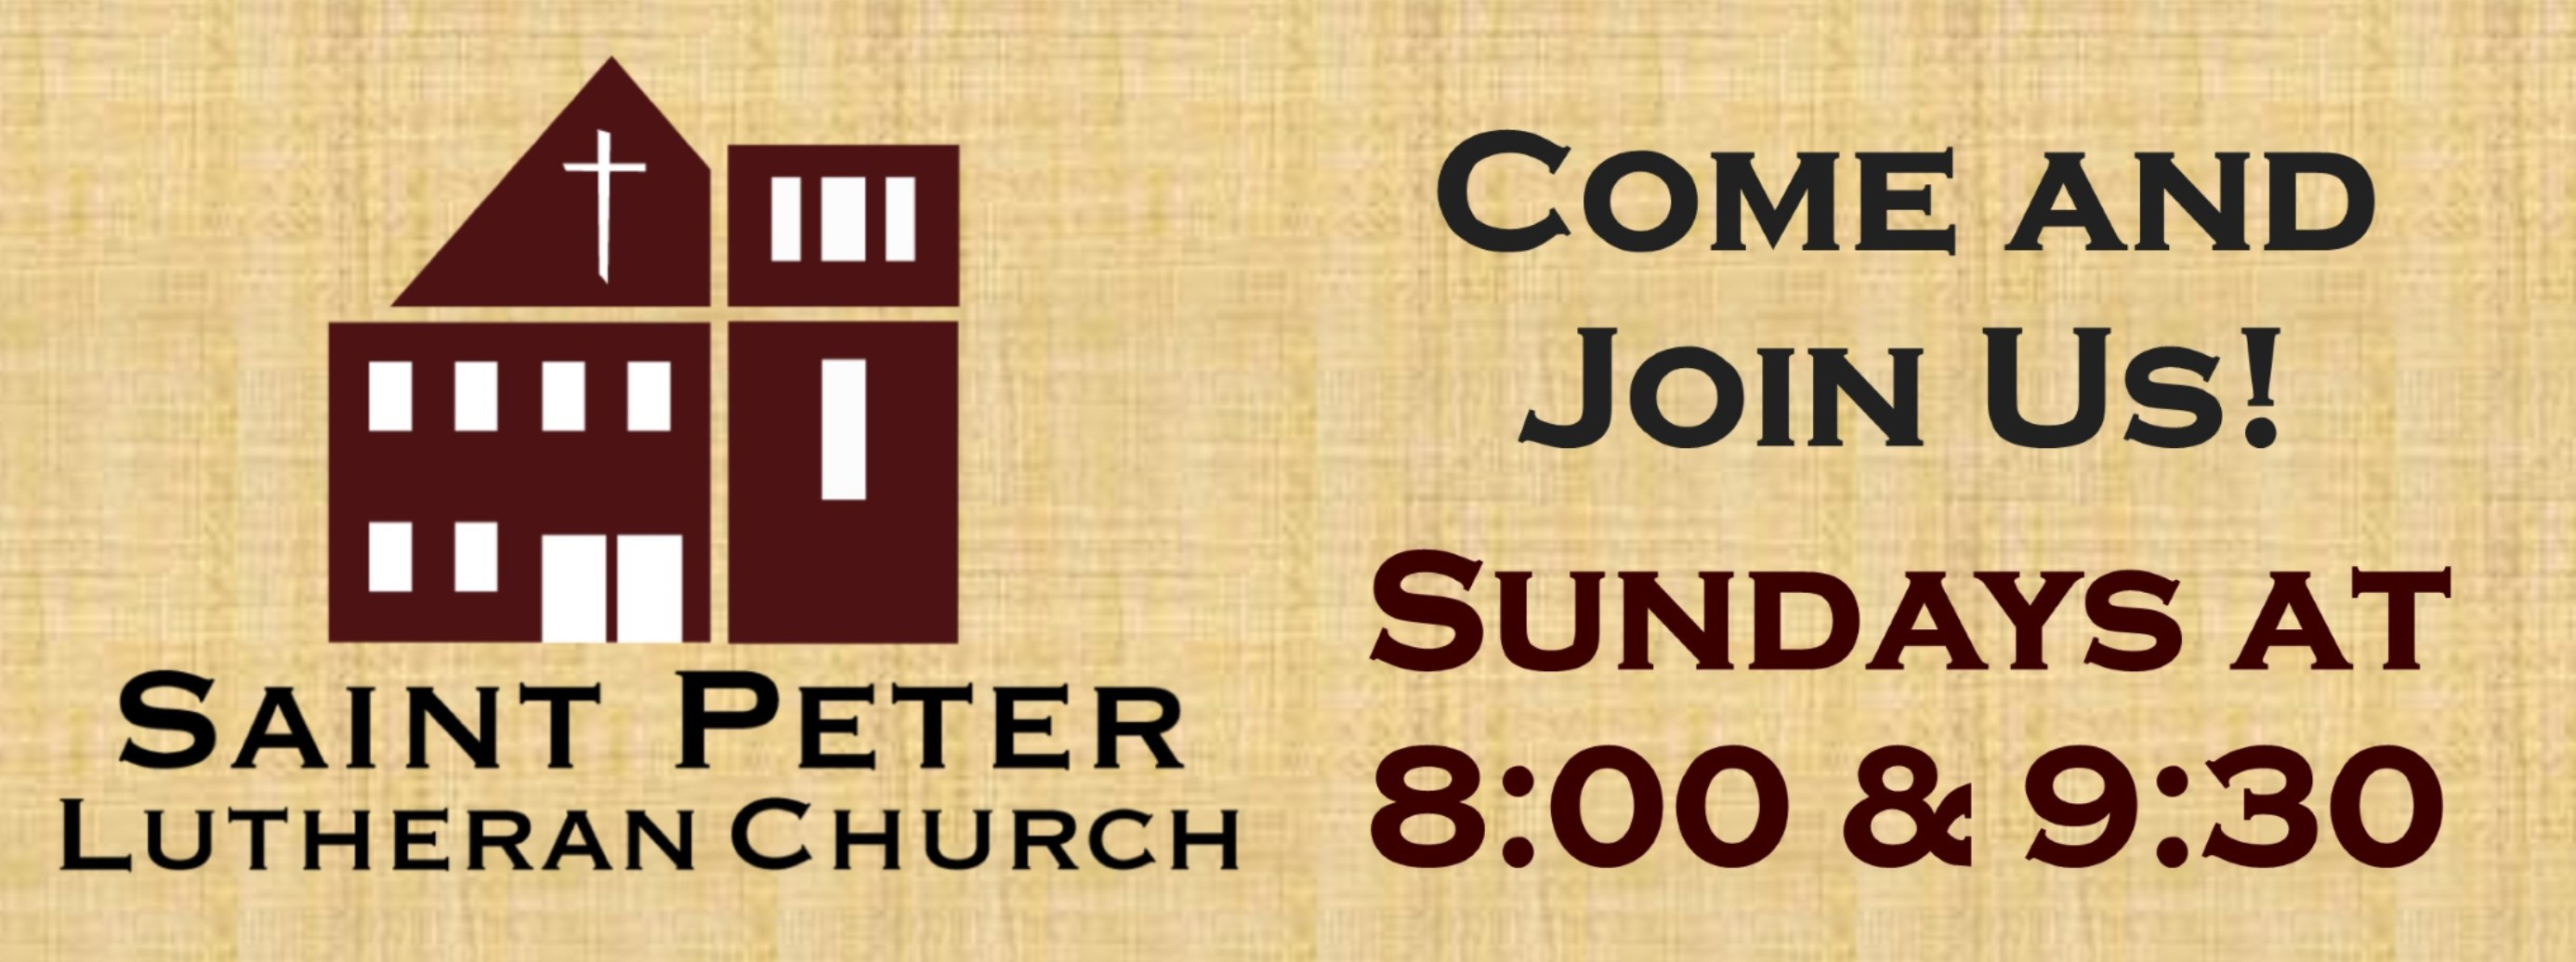 Join us for Worship!